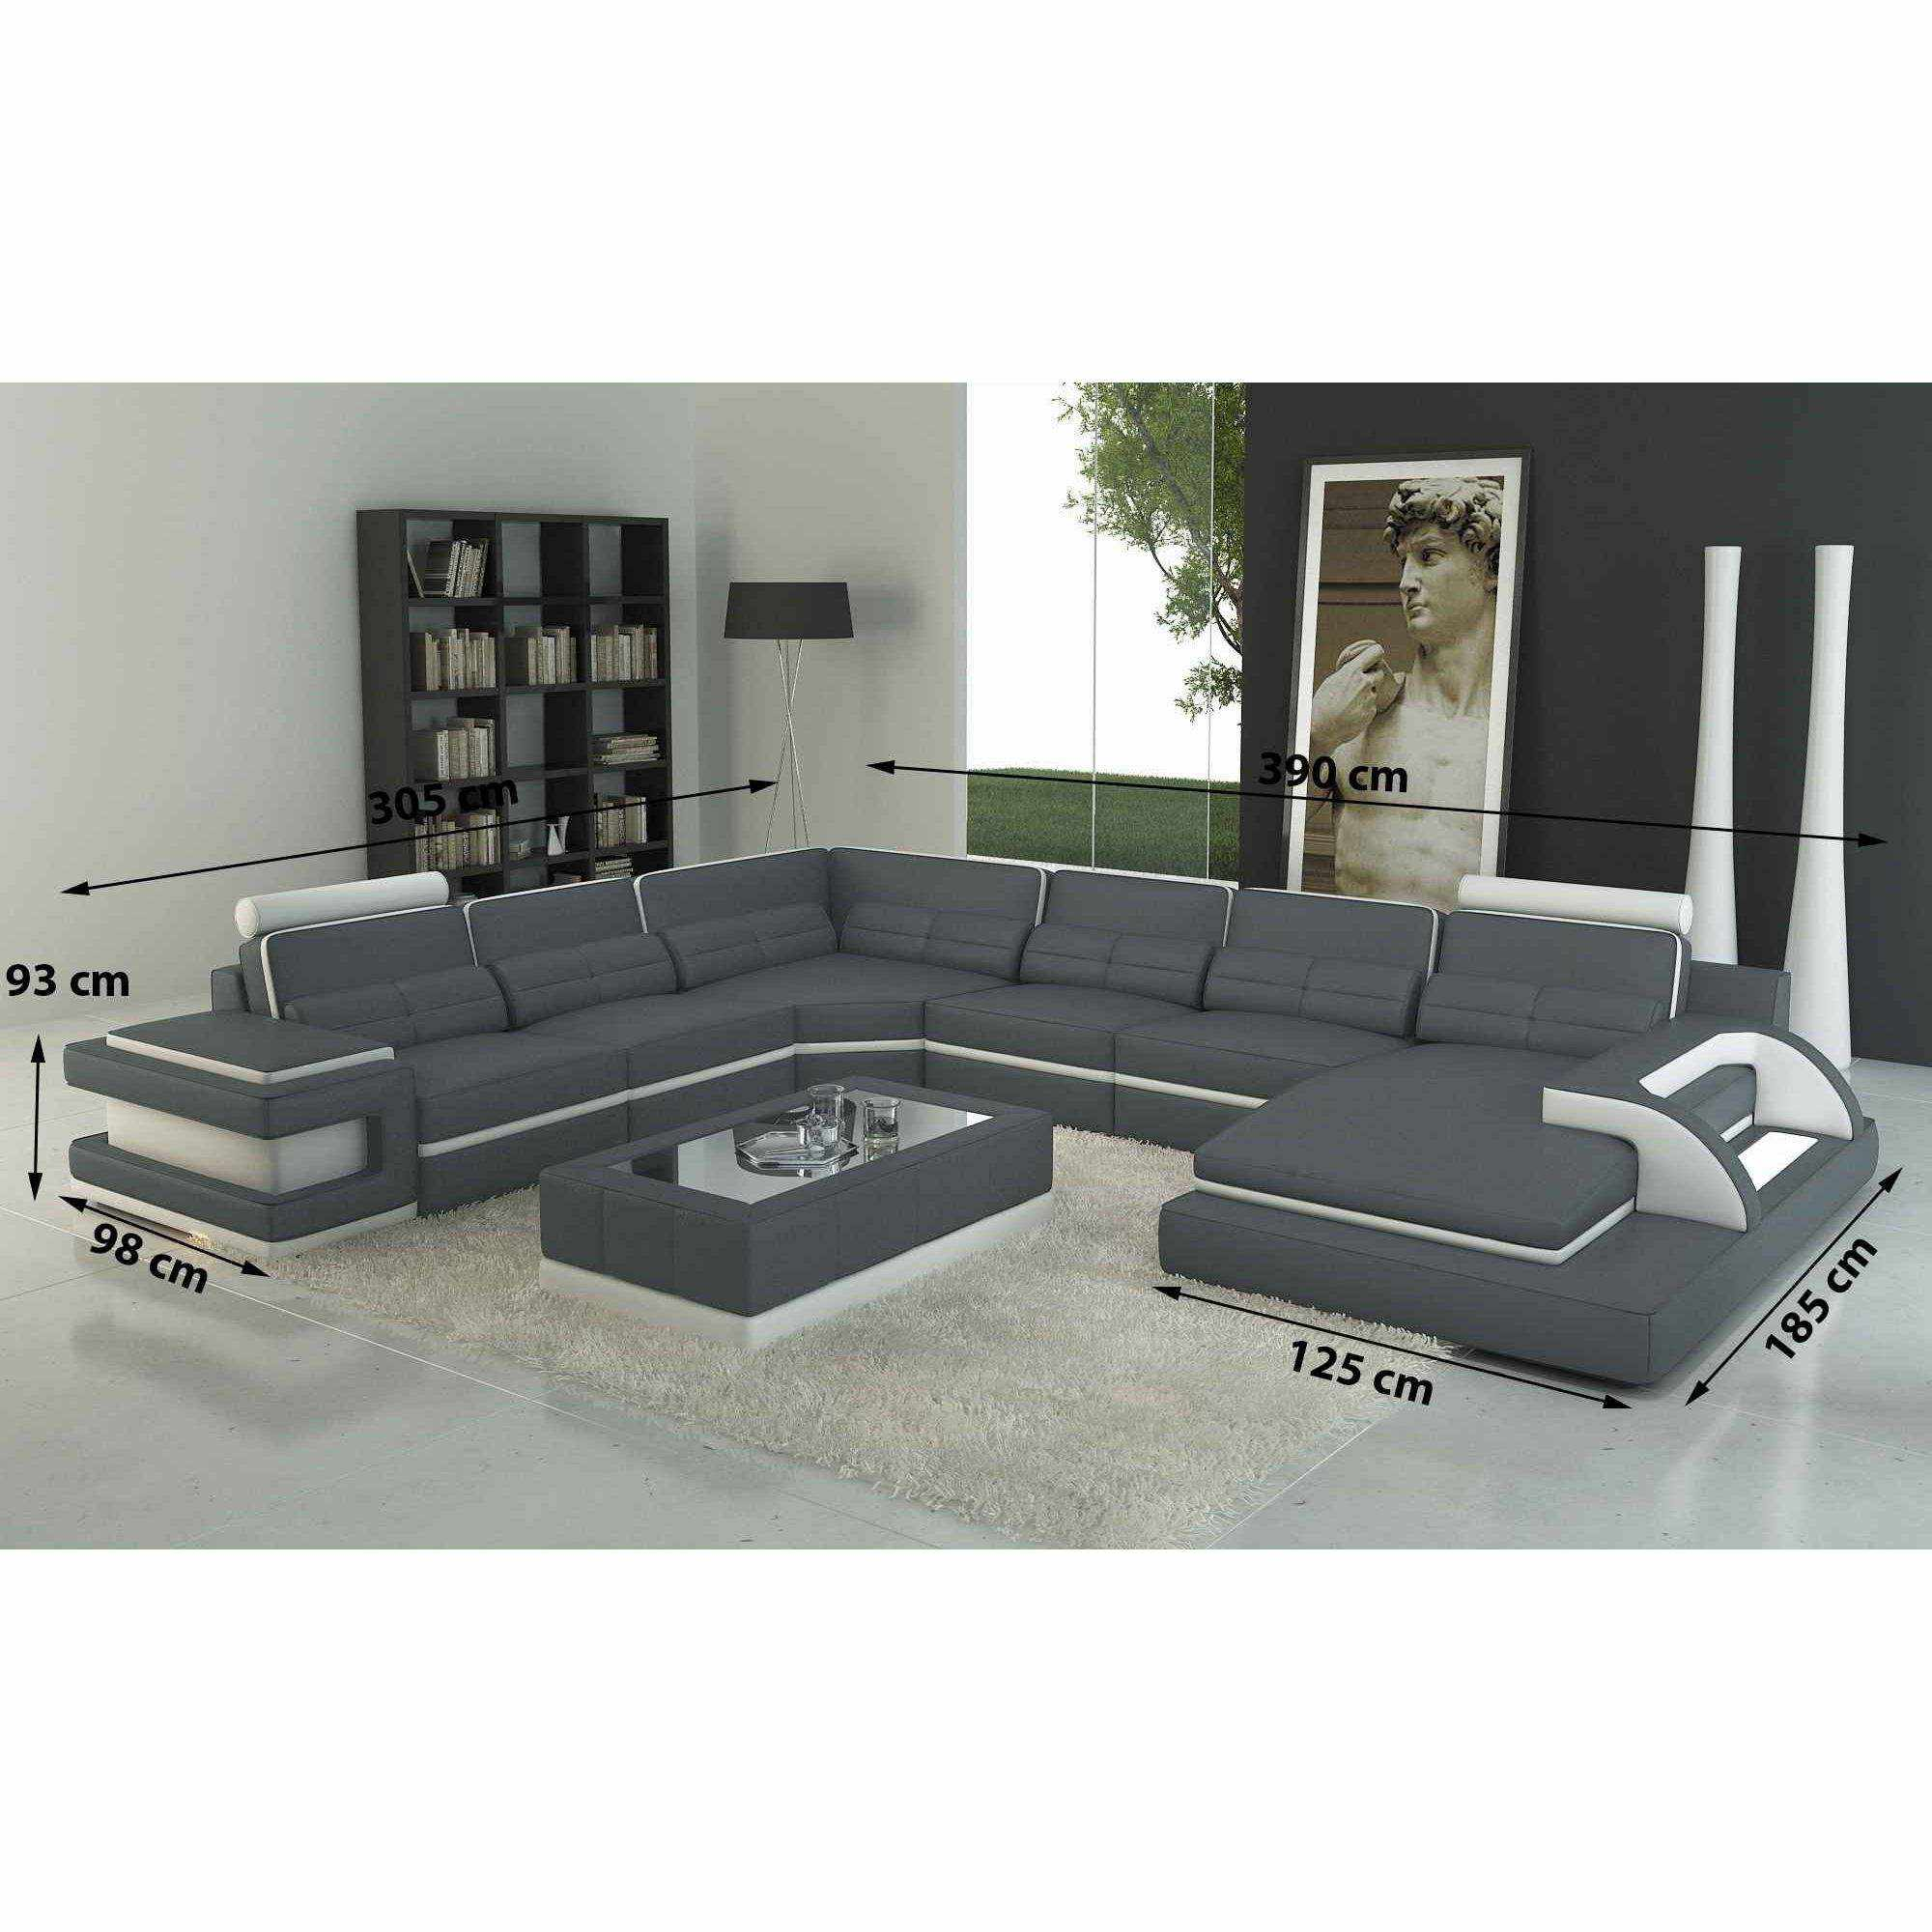 deco in paris canape panoramique cuir gris et blanc design avec lumiere ibiza panoramique. Black Bedroom Furniture Sets. Home Design Ideas